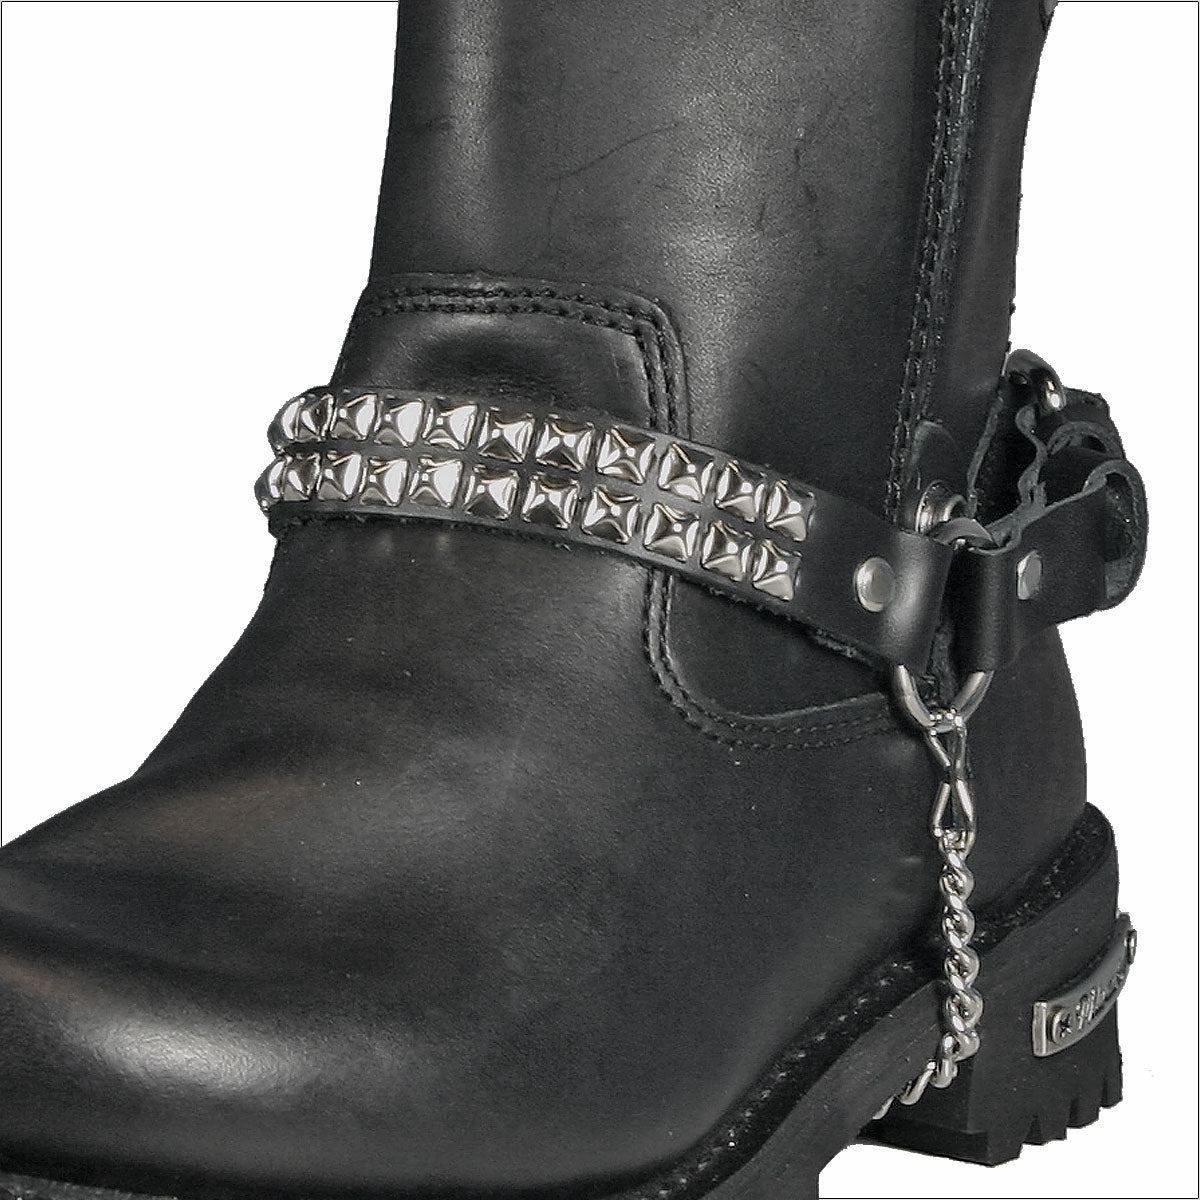 Hot Leathers Small Pyramid Stud Boot Chain